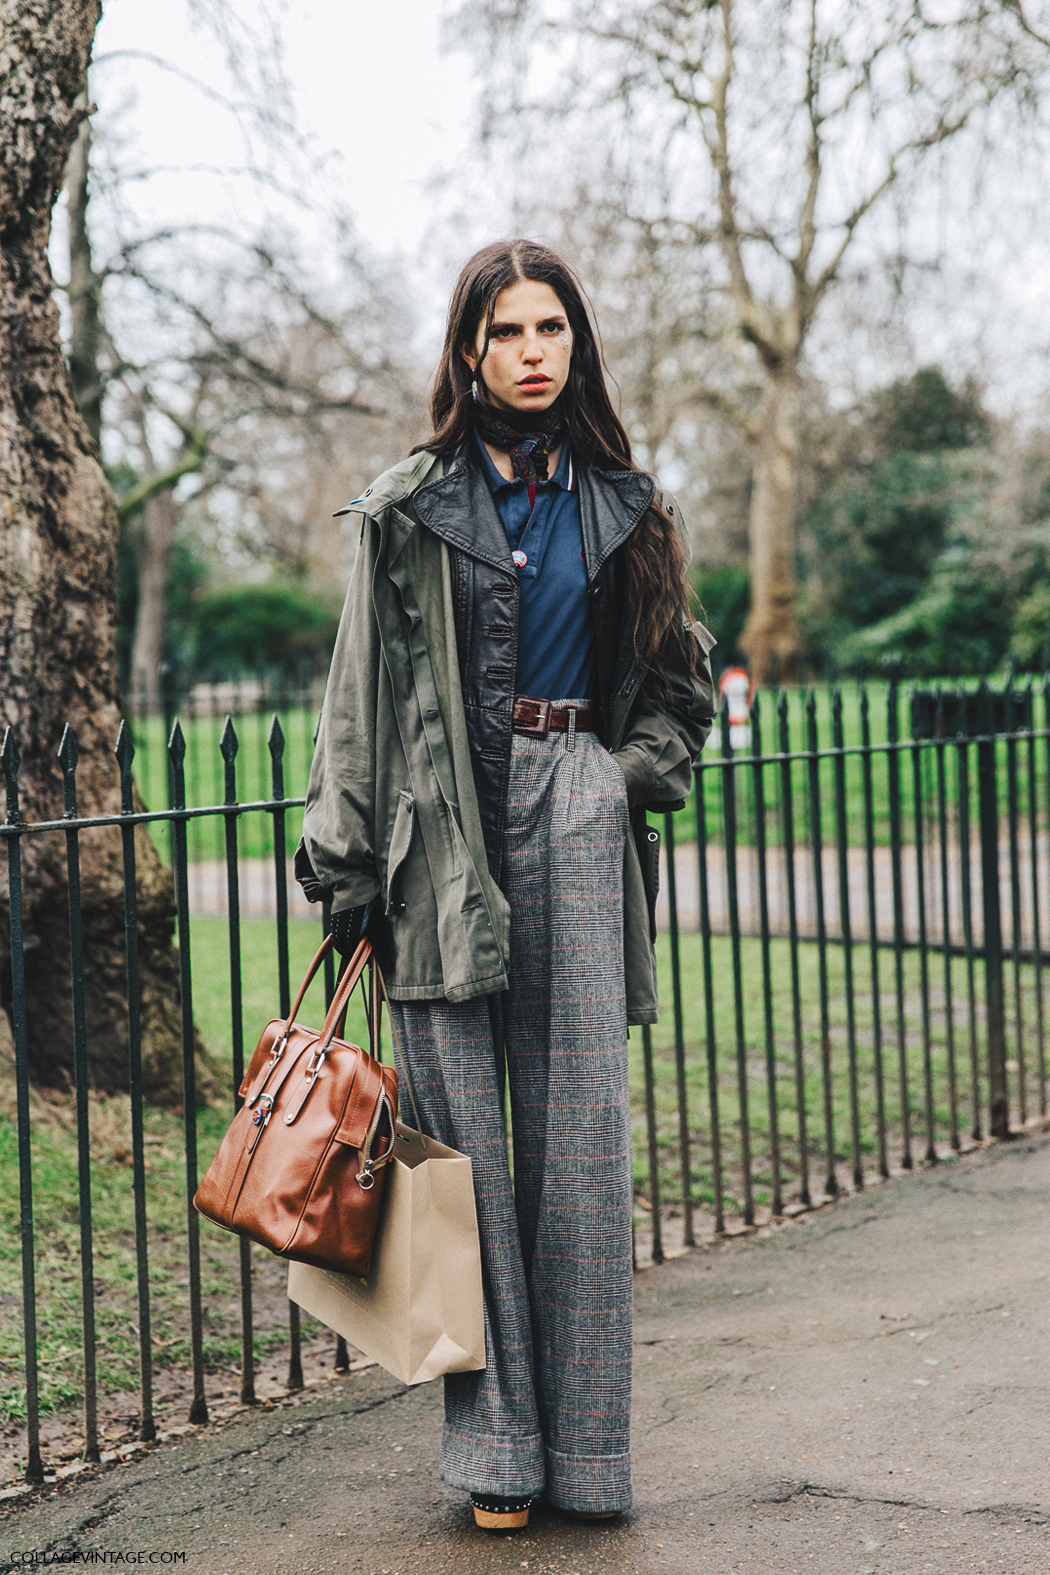 LFW-London_Fashion_Week_Fall_16-Street_Style-Collage_Vintage-Model-Burberry-Tweed_Trousers-Parka-5